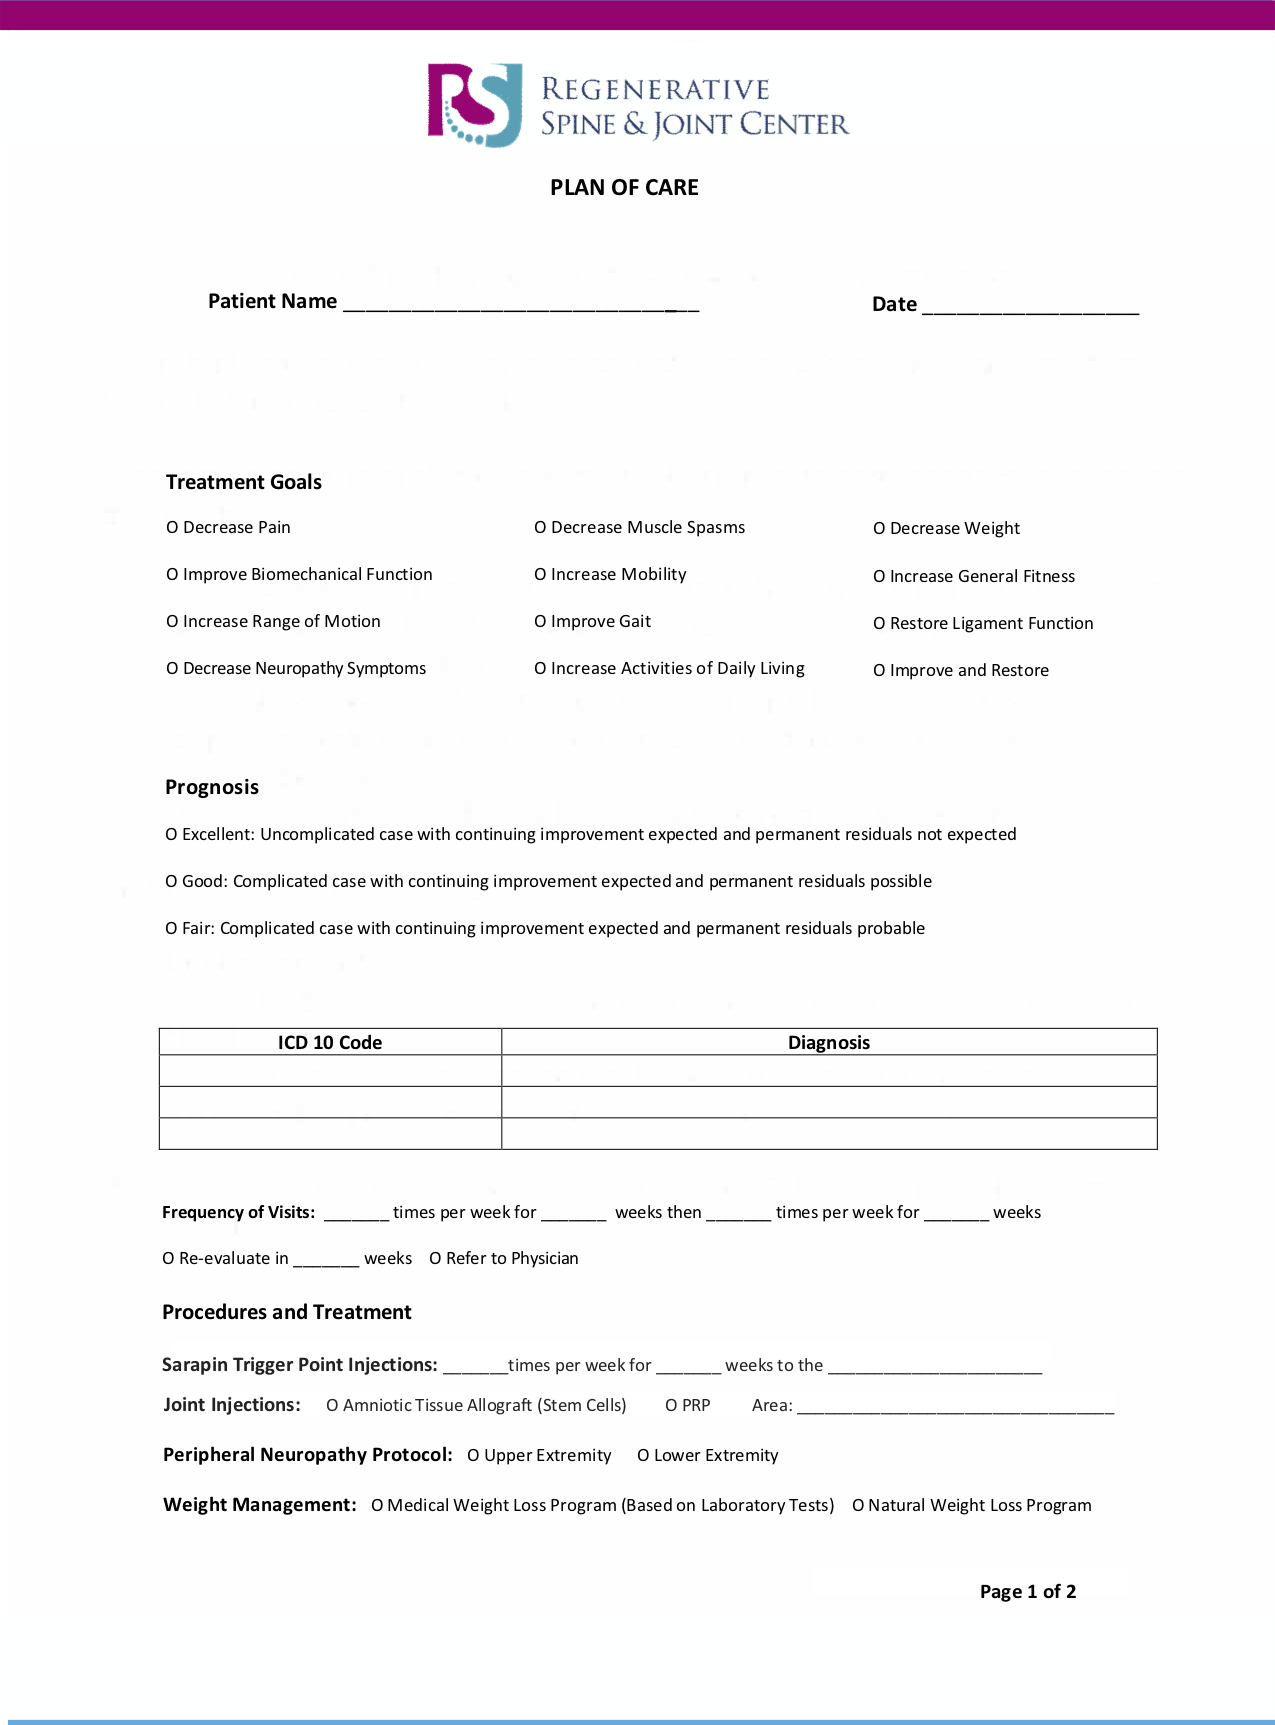 Plan of Care Form -